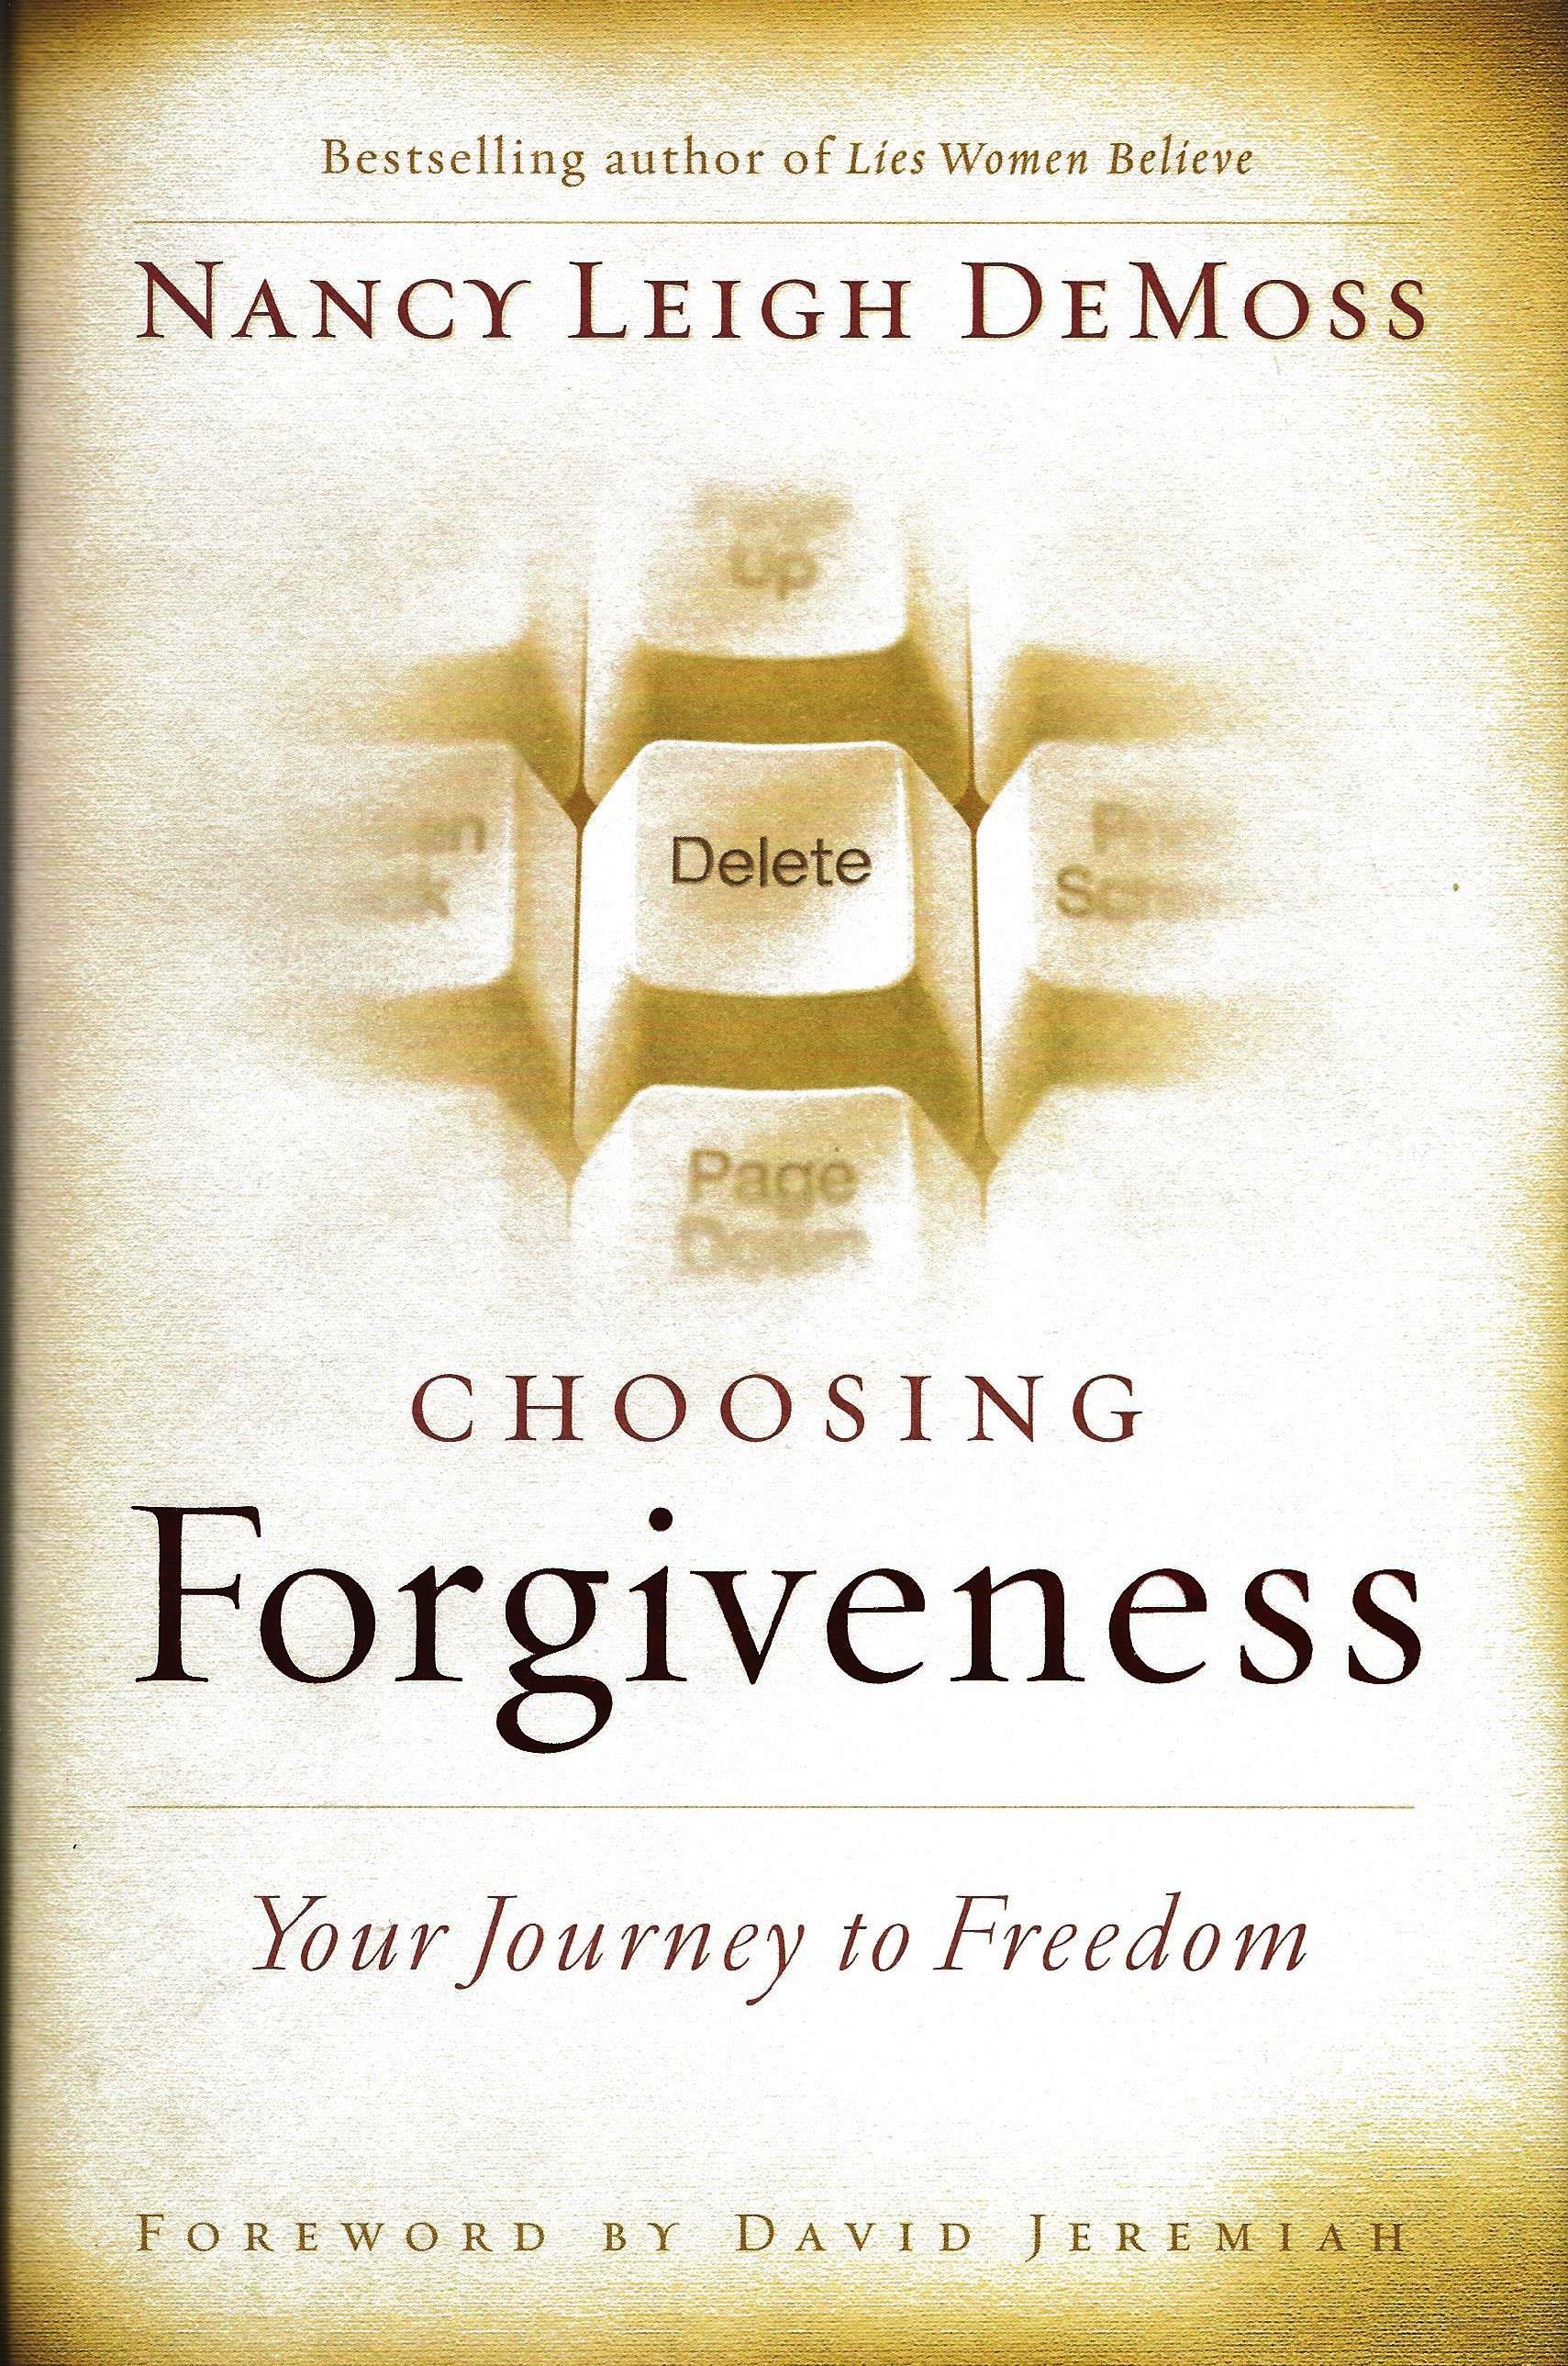 CHOOSING FORGIVENESS Nancy Leigh DeMoss